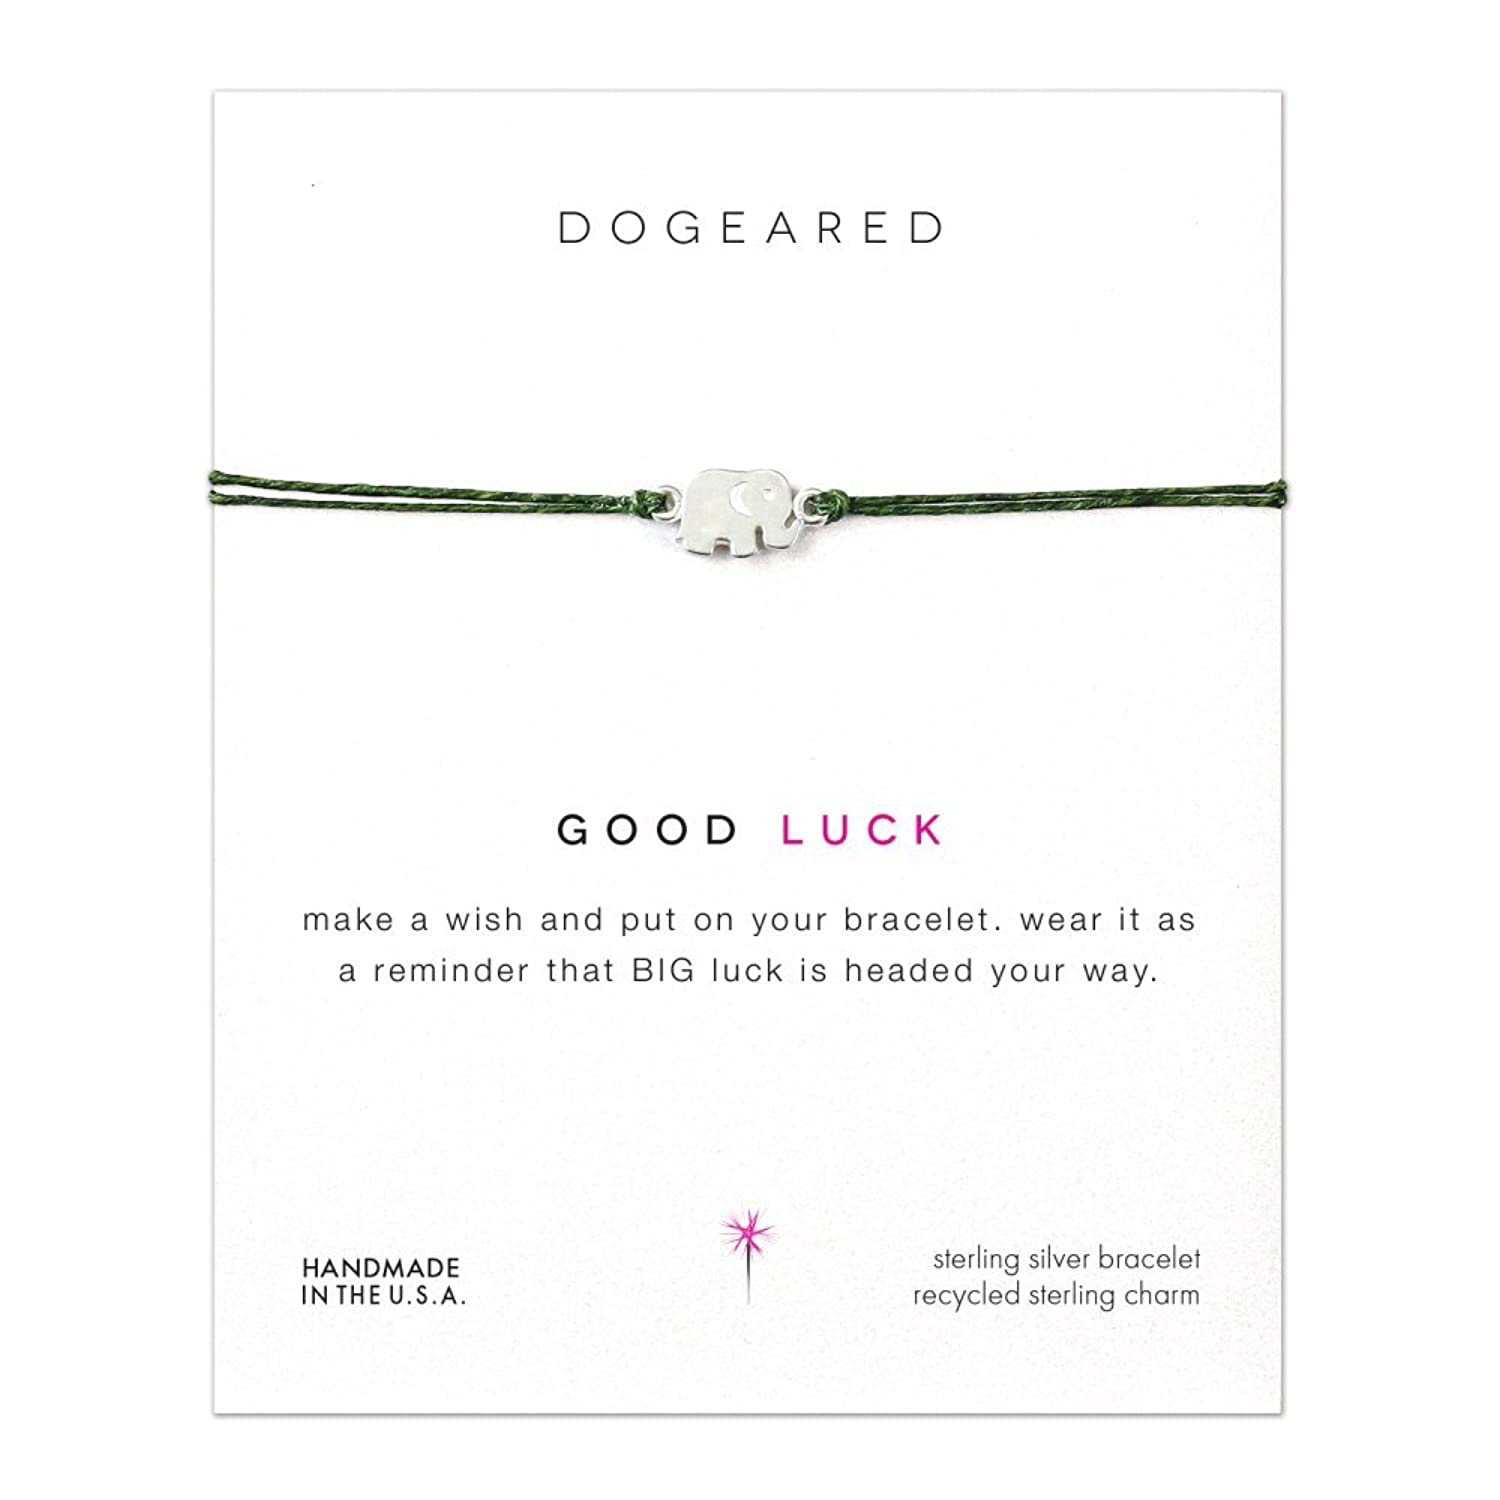 Dogeared Good Luck Elephant Green Linen Make A Wish Bracelet